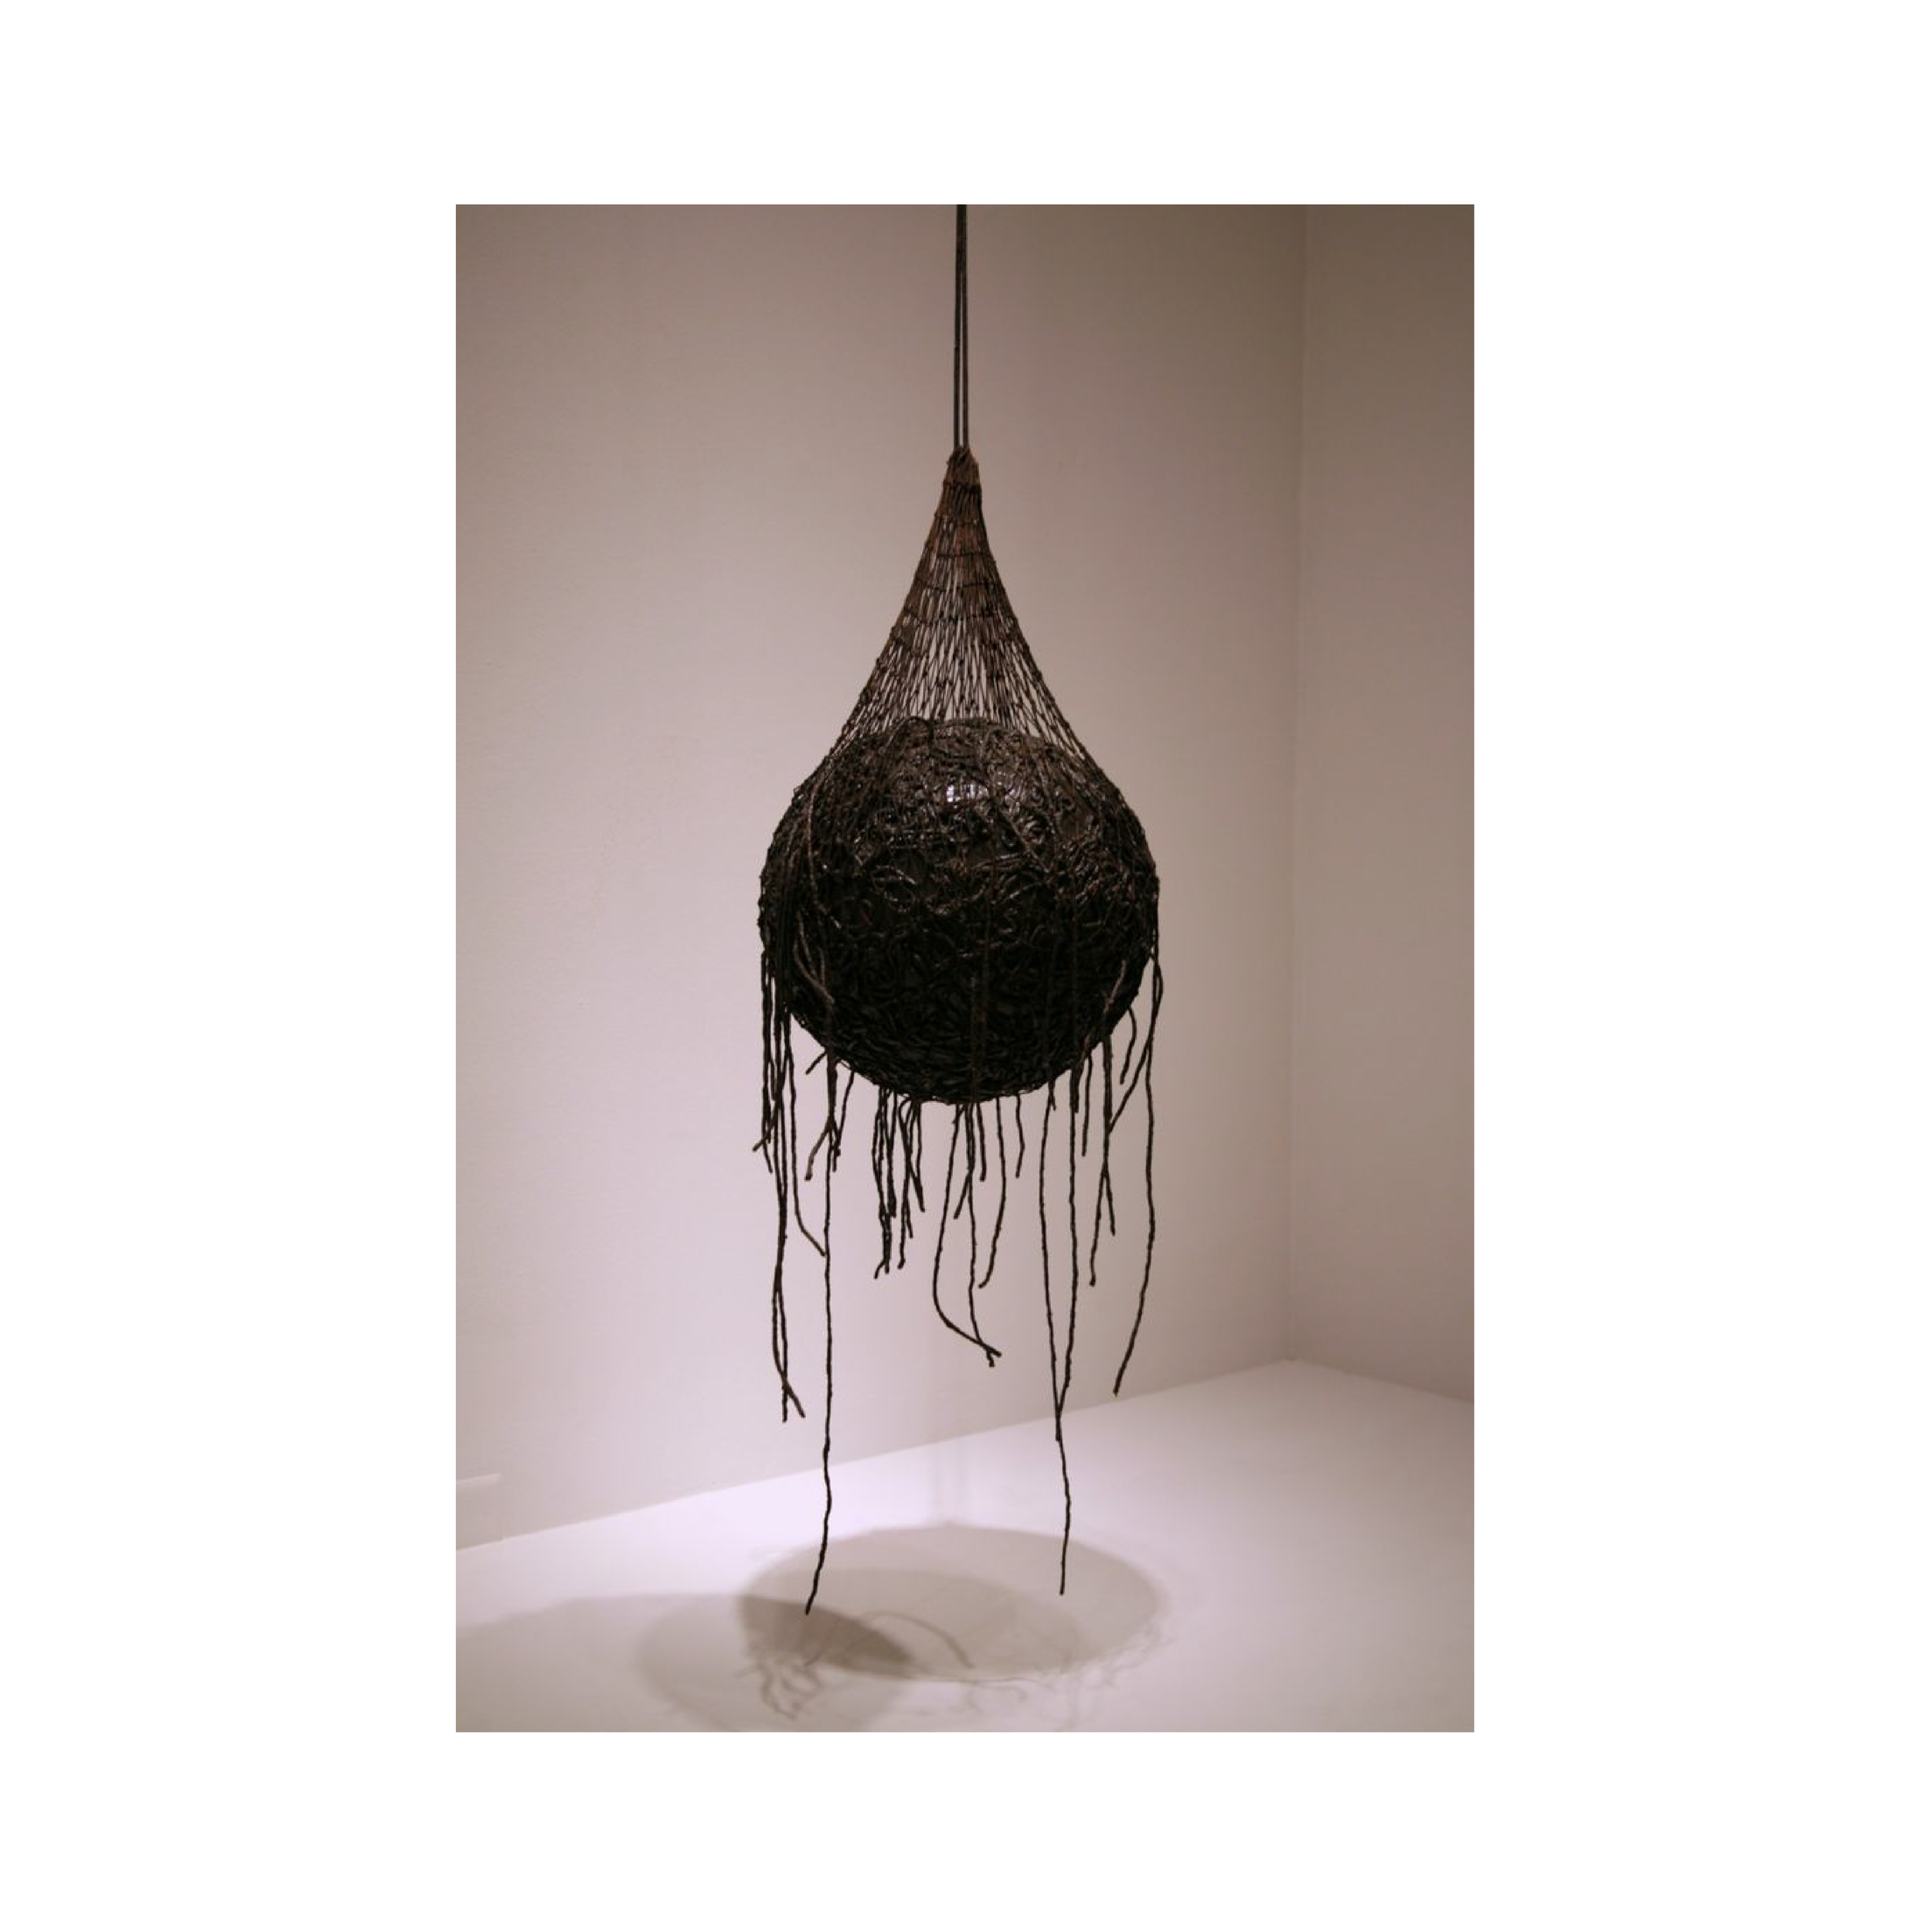 uncover-body-evahesse-03.png